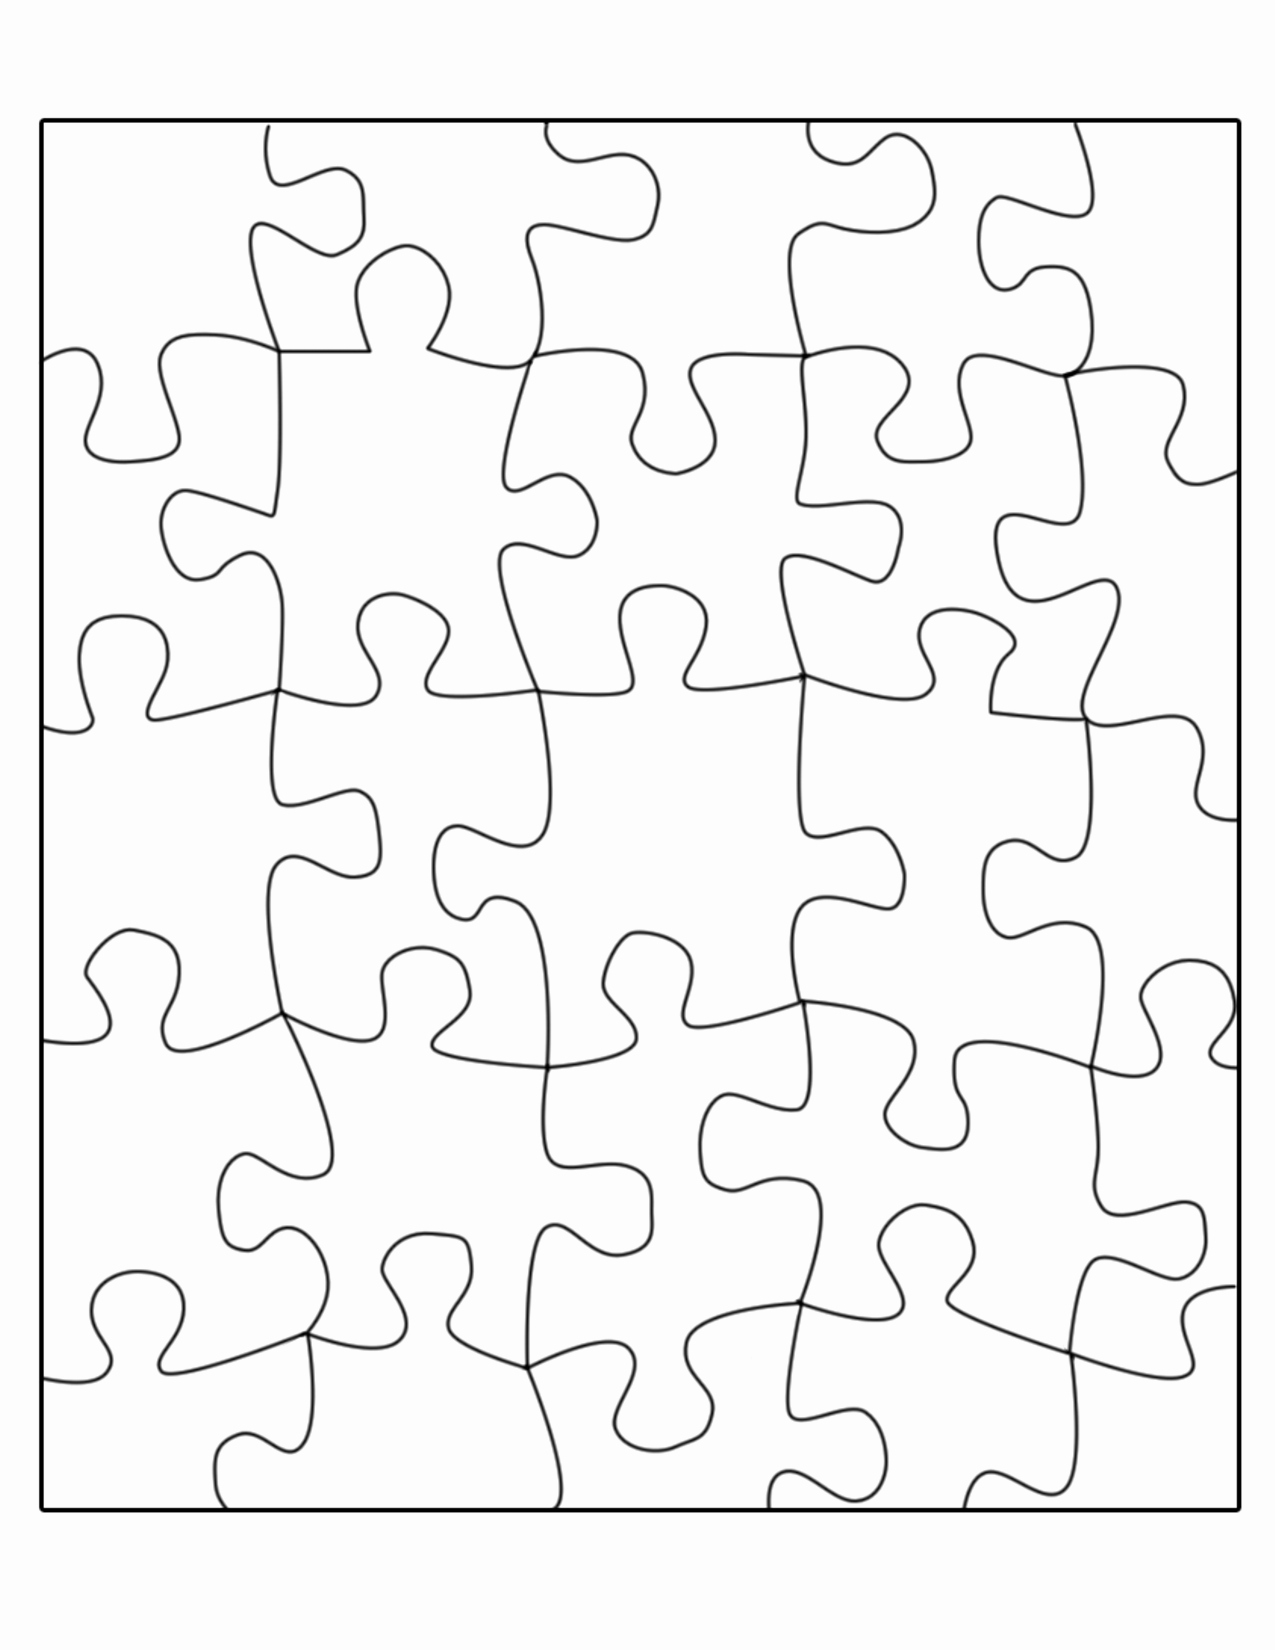 Blank Puzzle Pieces Template Lovely Related Piece Blank Jigsaw Puzzle Template Quote